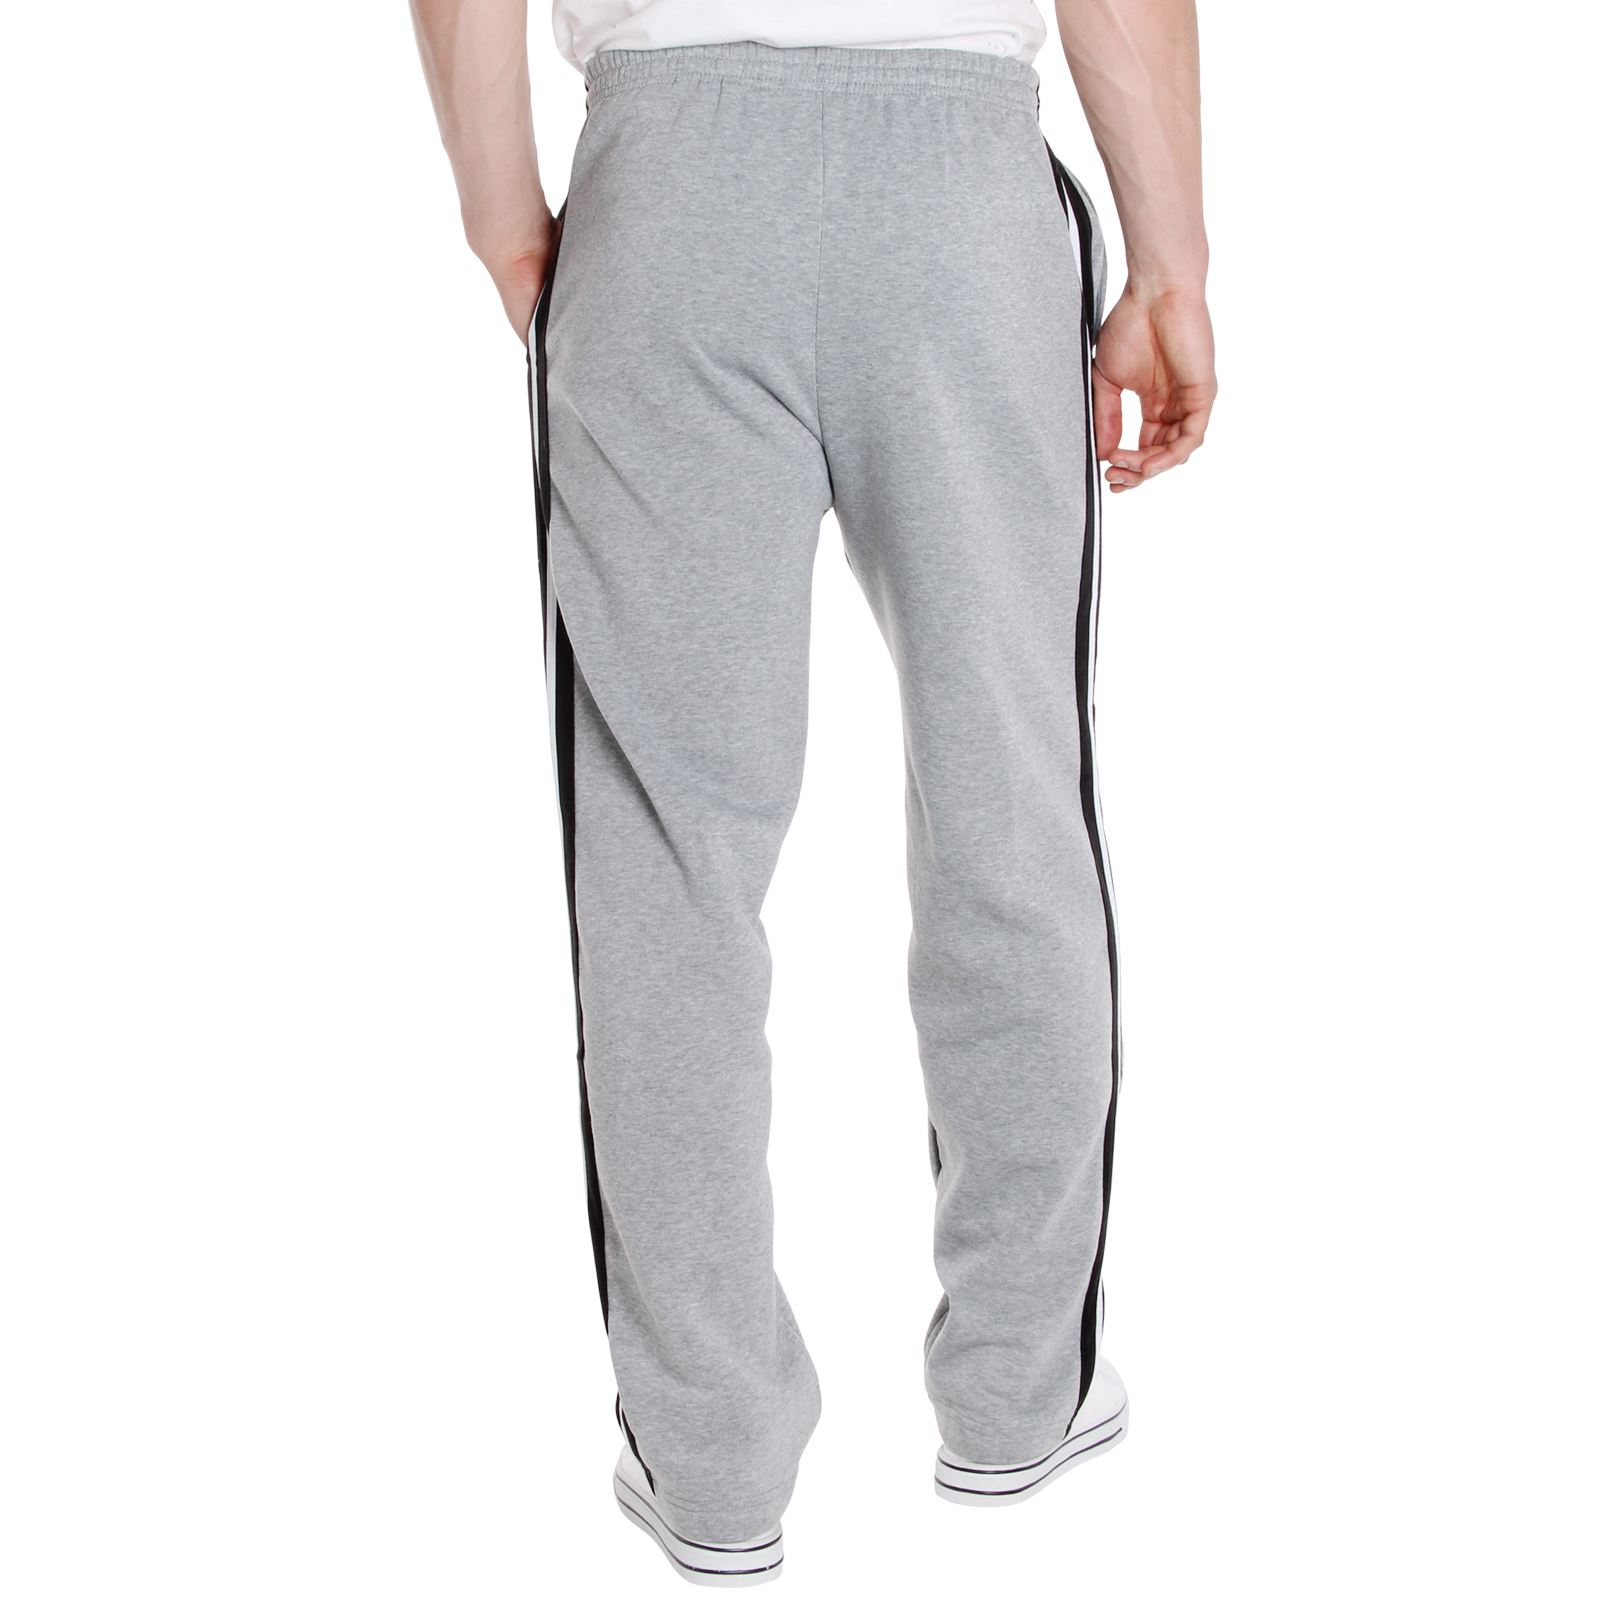 Homme pantalon rayure survetement bas jogging decontracte sport gym - Bas jogging homme ...